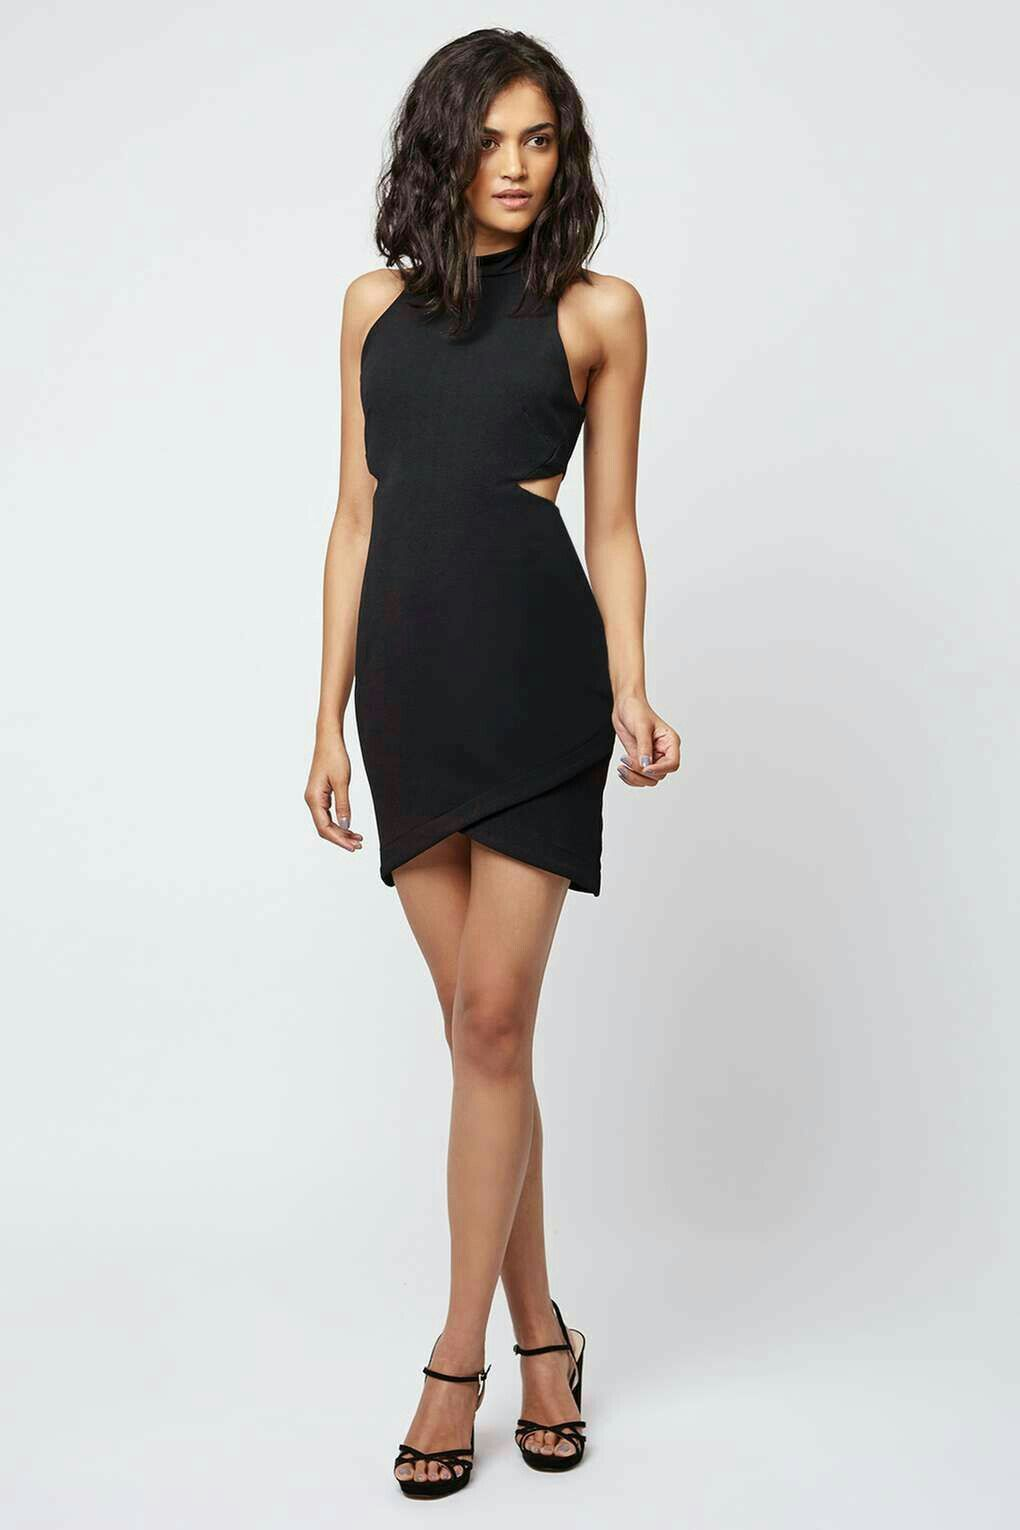 Bodycon dresses for teens in new york